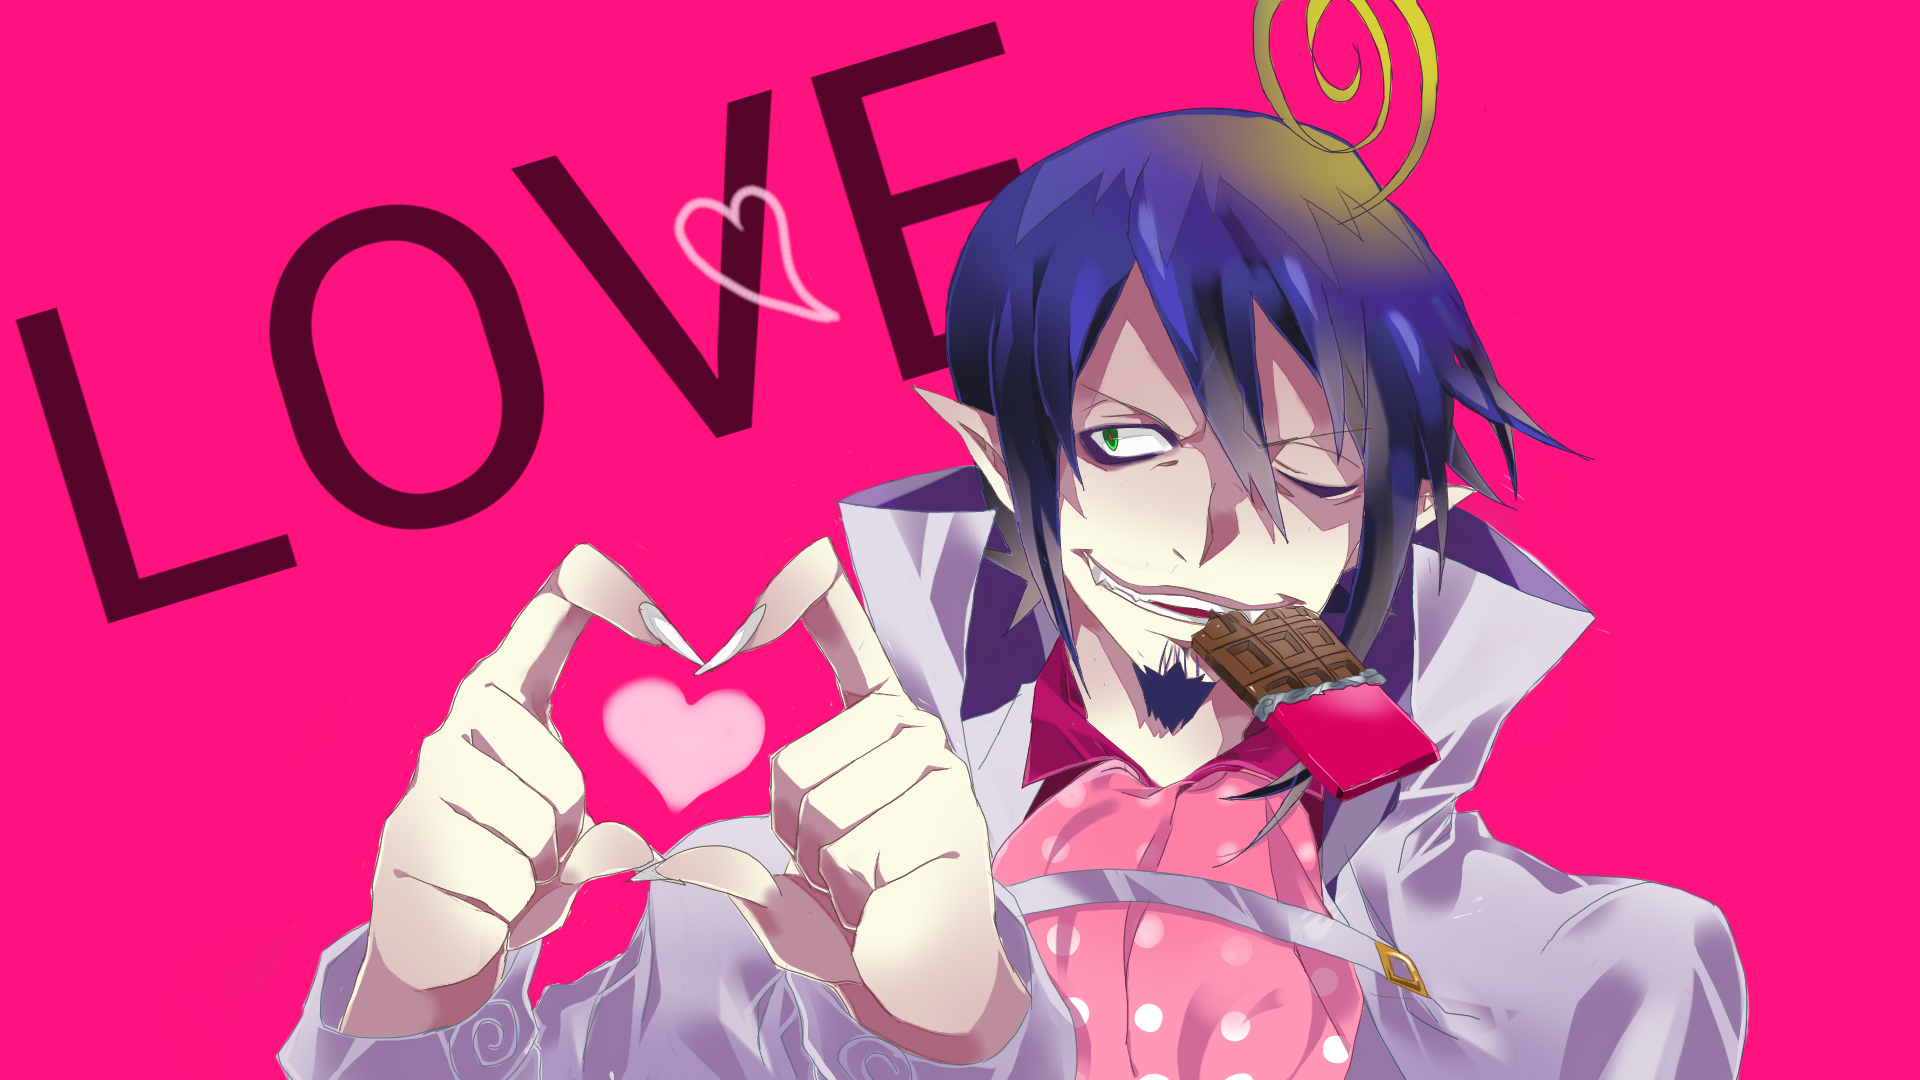 Mephisto Pheles Ao No Exorcist Hd Wallpaper 1507298 Zerochan